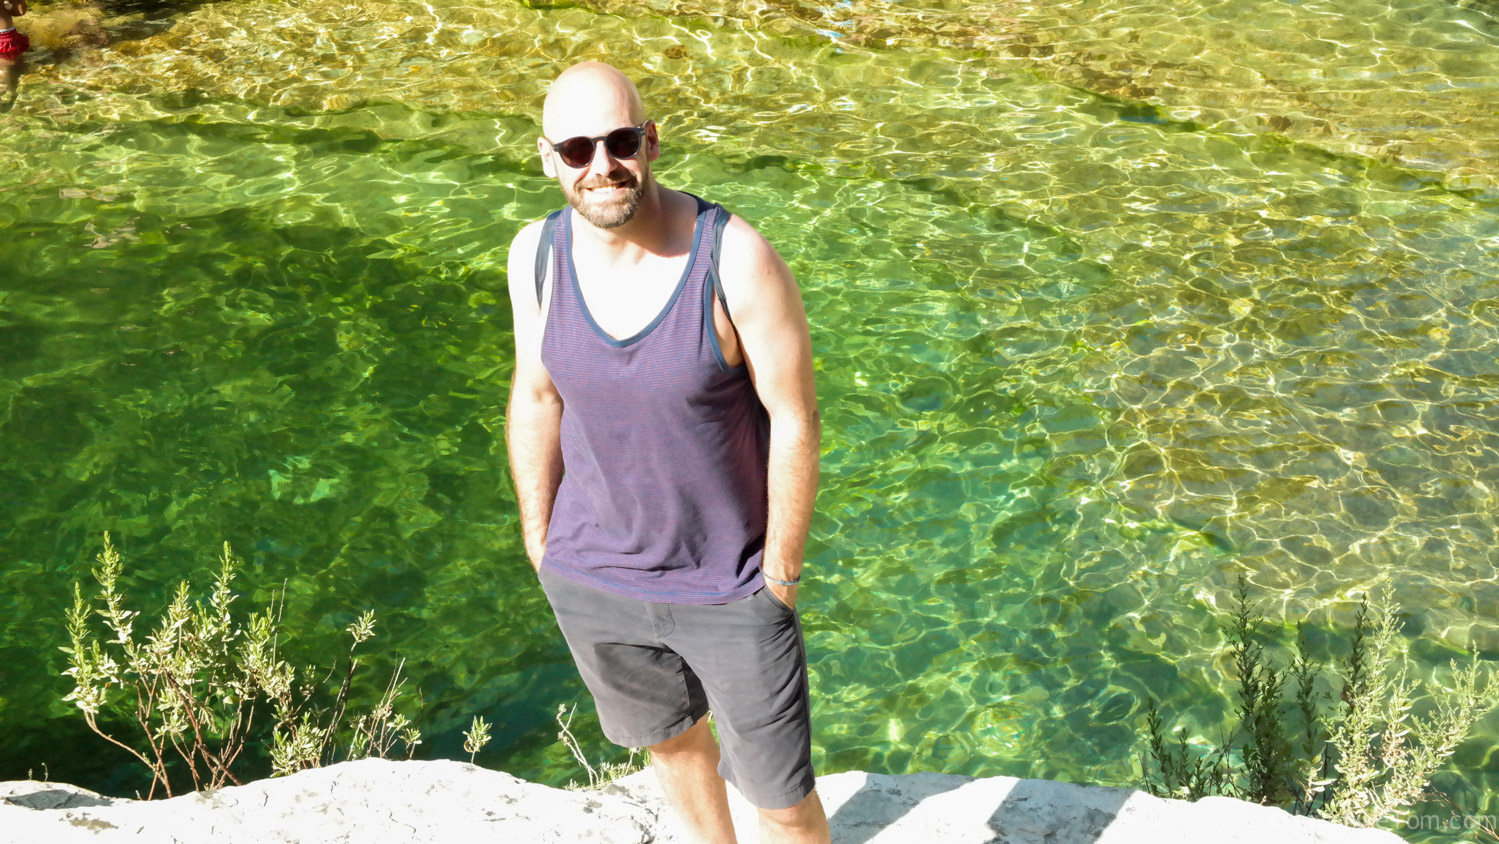 gay travel blogger LiveLikeTom hiking Cavagrande del Cassibile Sicilië wandelen